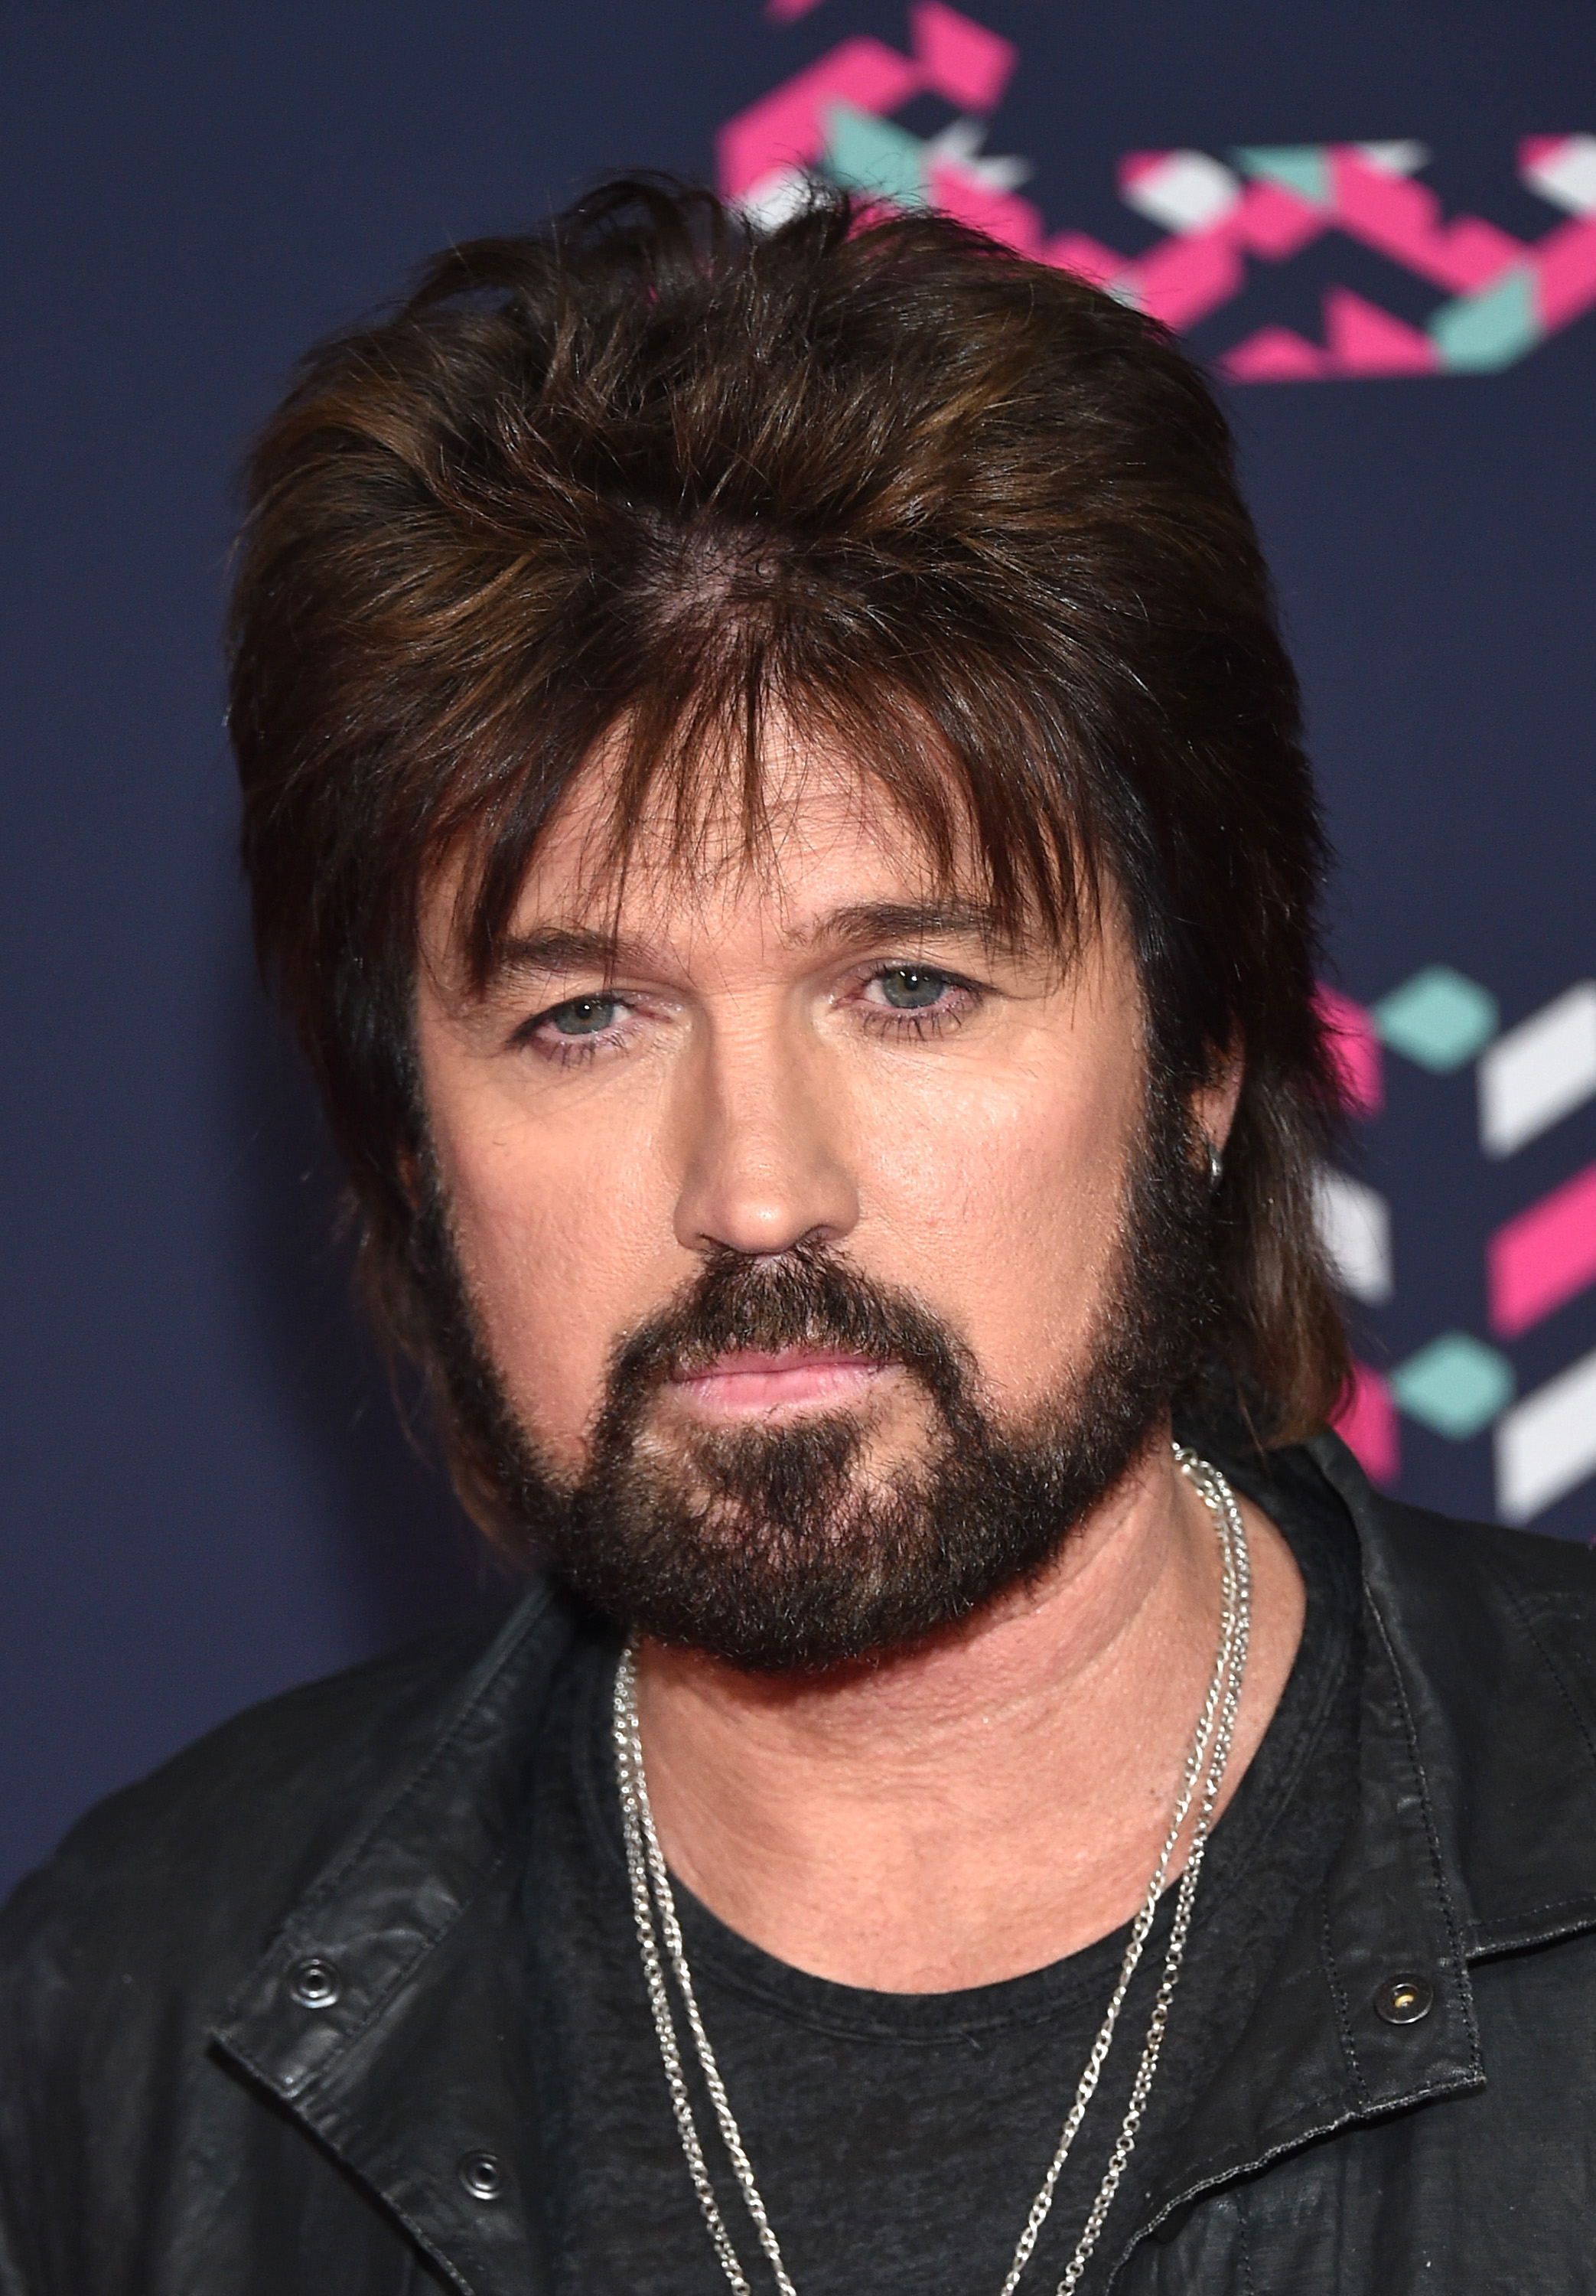 What the Fug: Billy Ray Cyrus at the CMTs